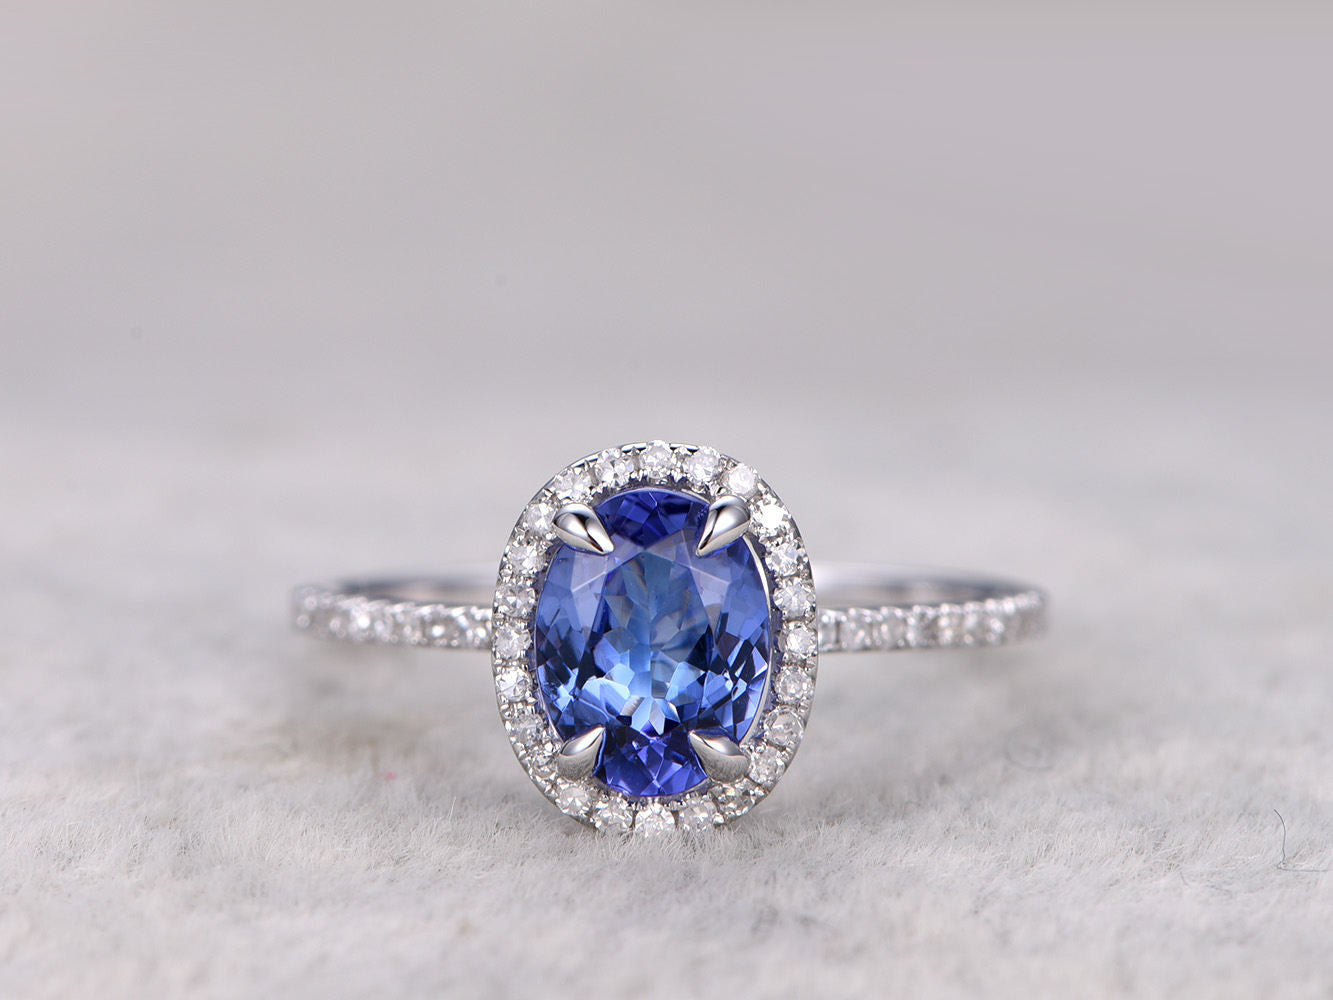 6x8mm Oval Cut Tanzanite Engagement ring,Diamond Promise Ring,14K,White Gold,Bridal Ring,wedding band,Blue Gem Stone ring,Claw Prong set